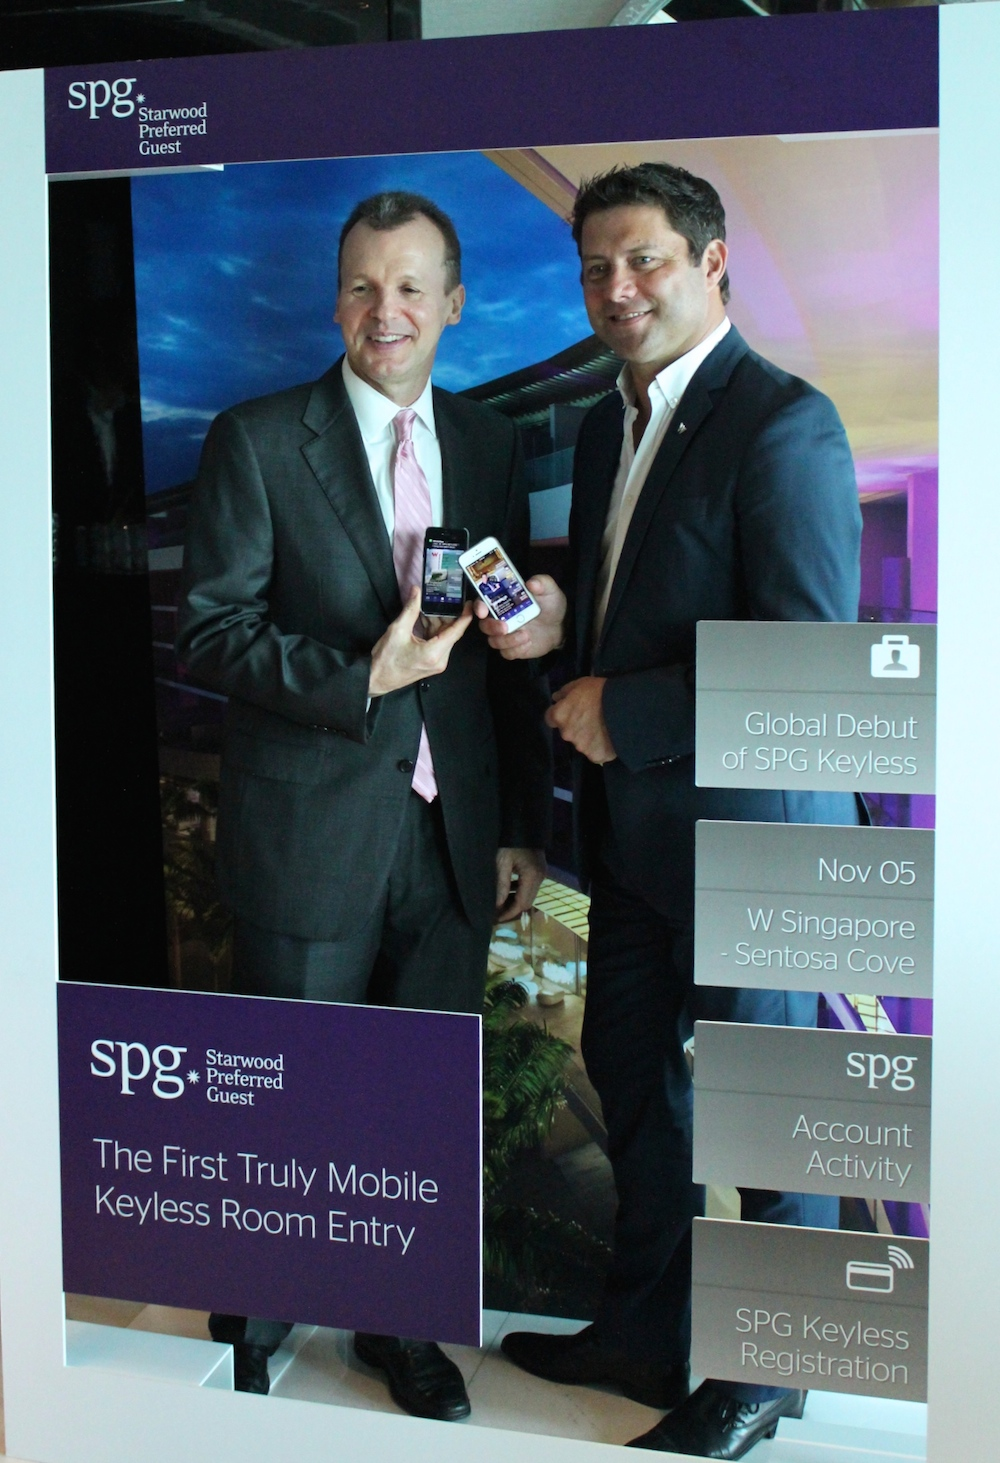 managers W Singapore presenting SPG Keyless |curlytraveller.com